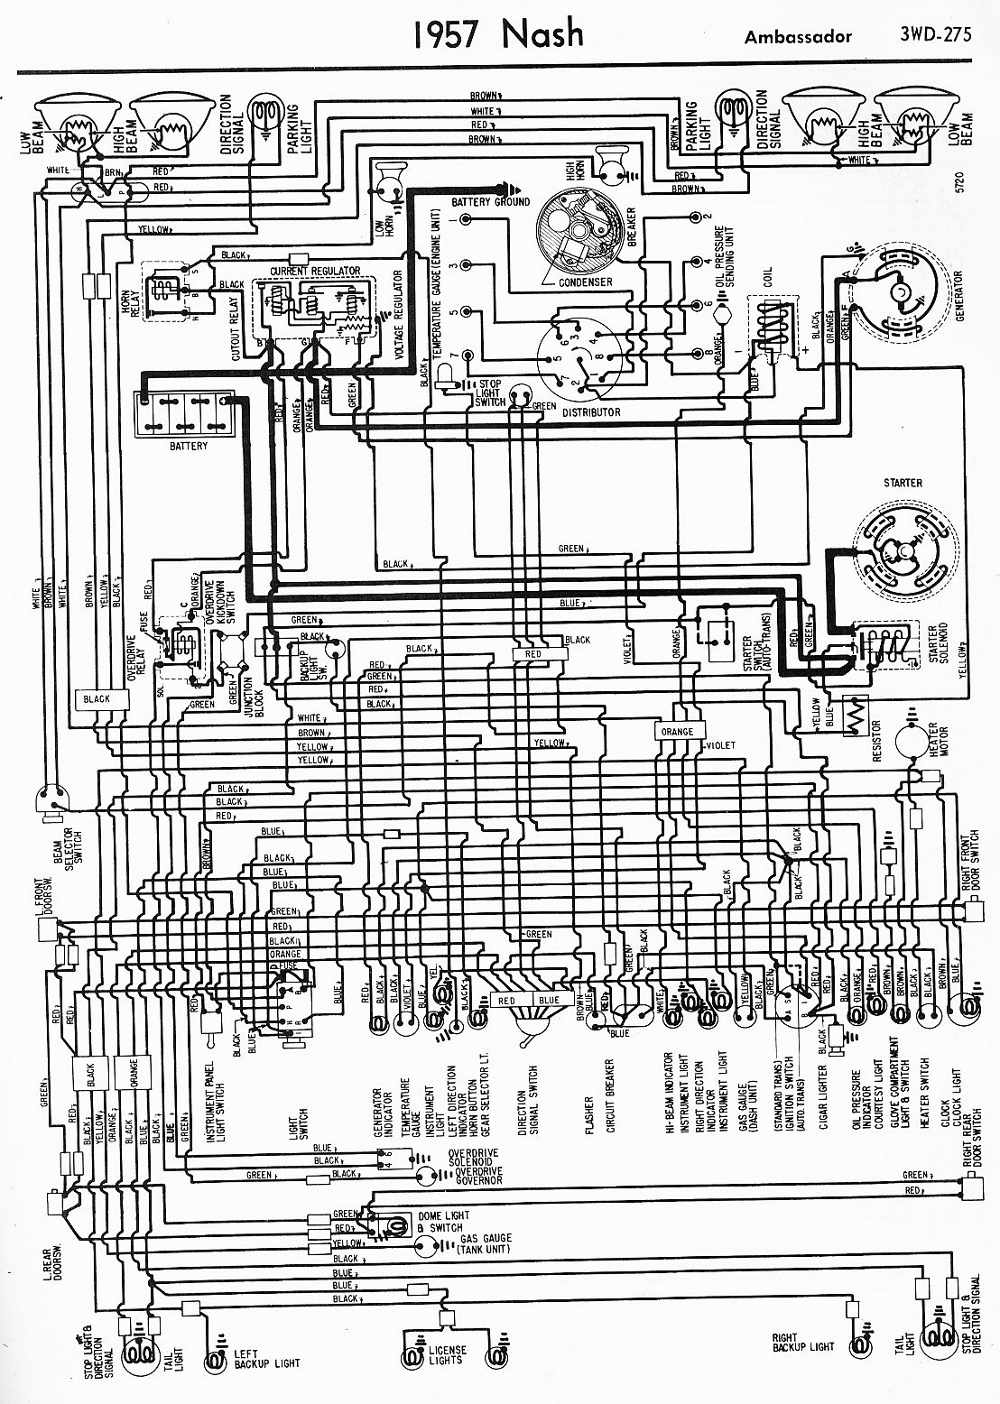 medium resolution of 1950 hudson wiring diagram wiring diagram nash metropolitan wiring harness metropolitan nash color wiring diagram